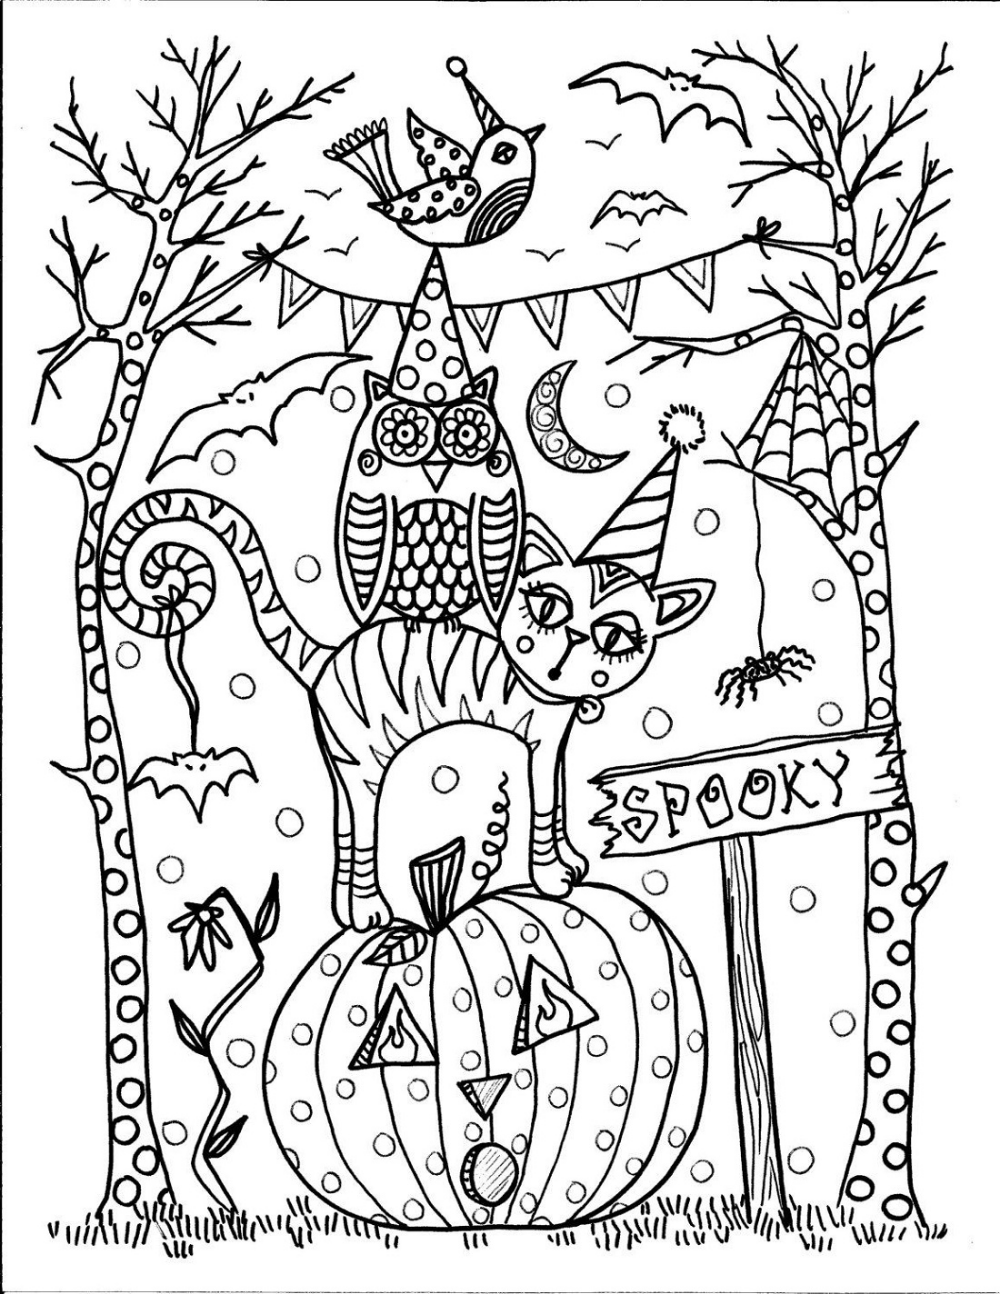 Halloween Cat Coloring Pages For Adults K5 Worksheets Halloween Coloring Book Fall Coloring Pages Halloween Coloring Pages